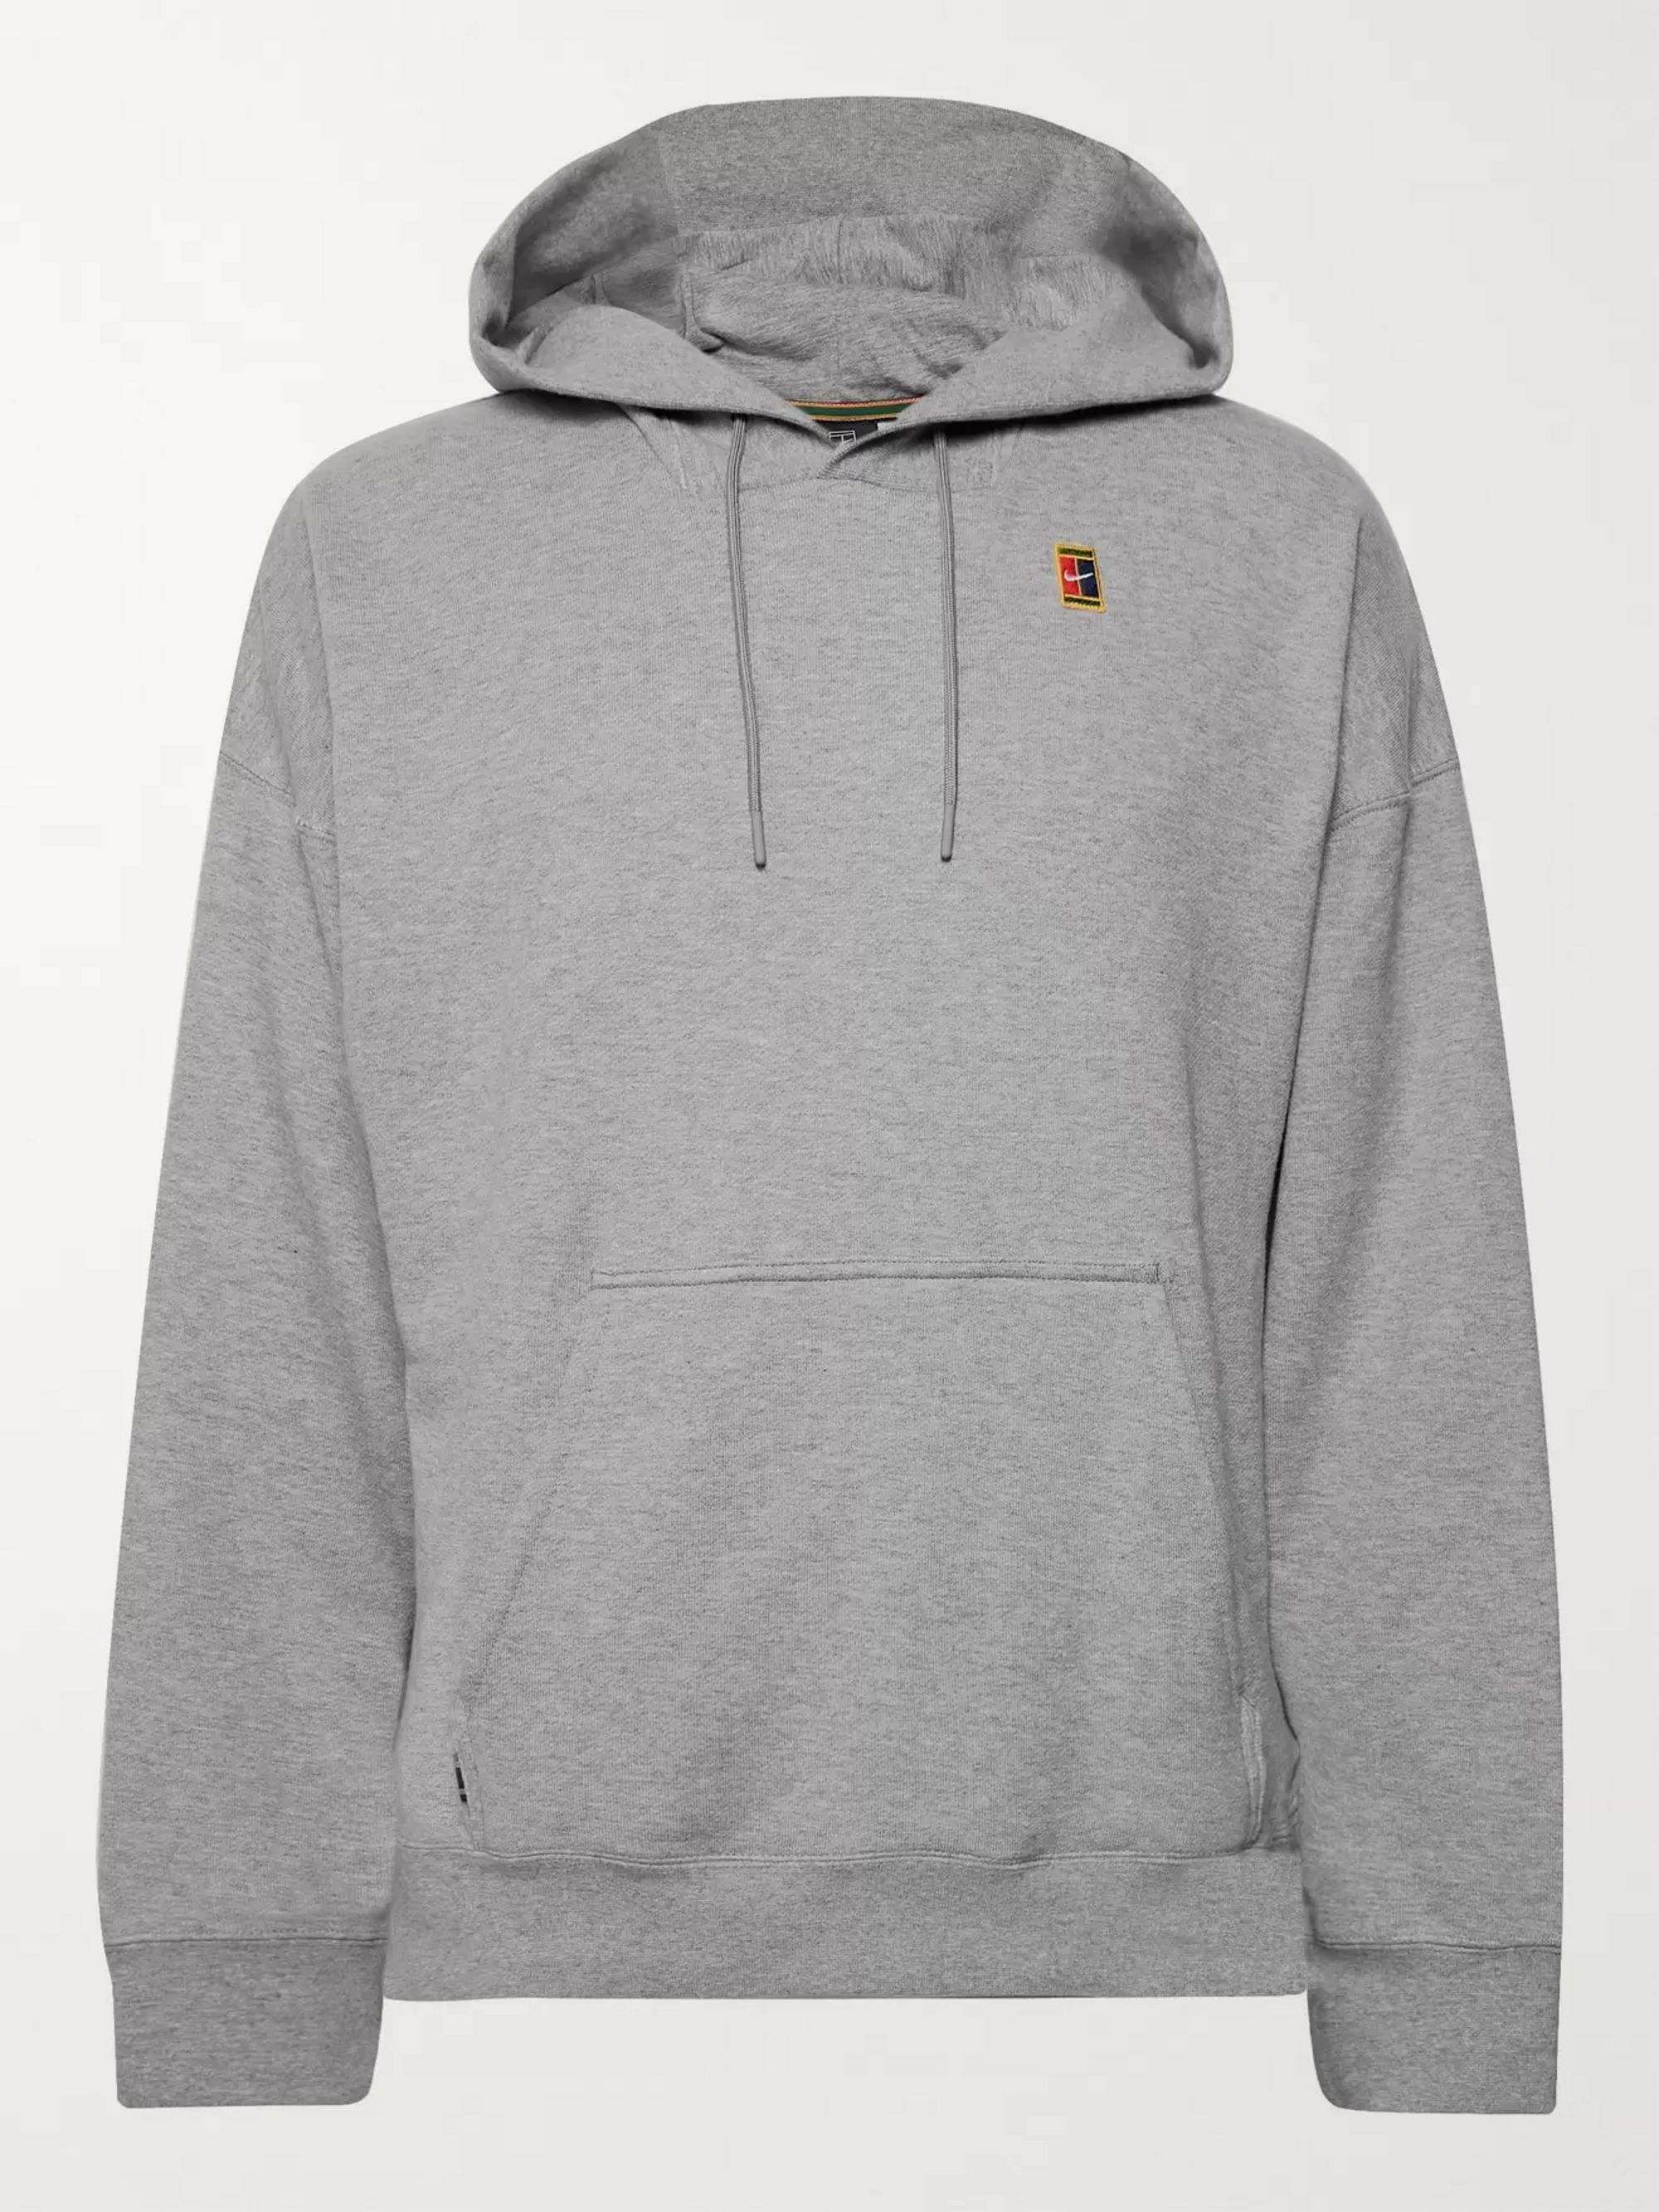 Nike Tennis NikeCourt Logo-Appliquéd Loopback Cotton-Jersey Hoodie